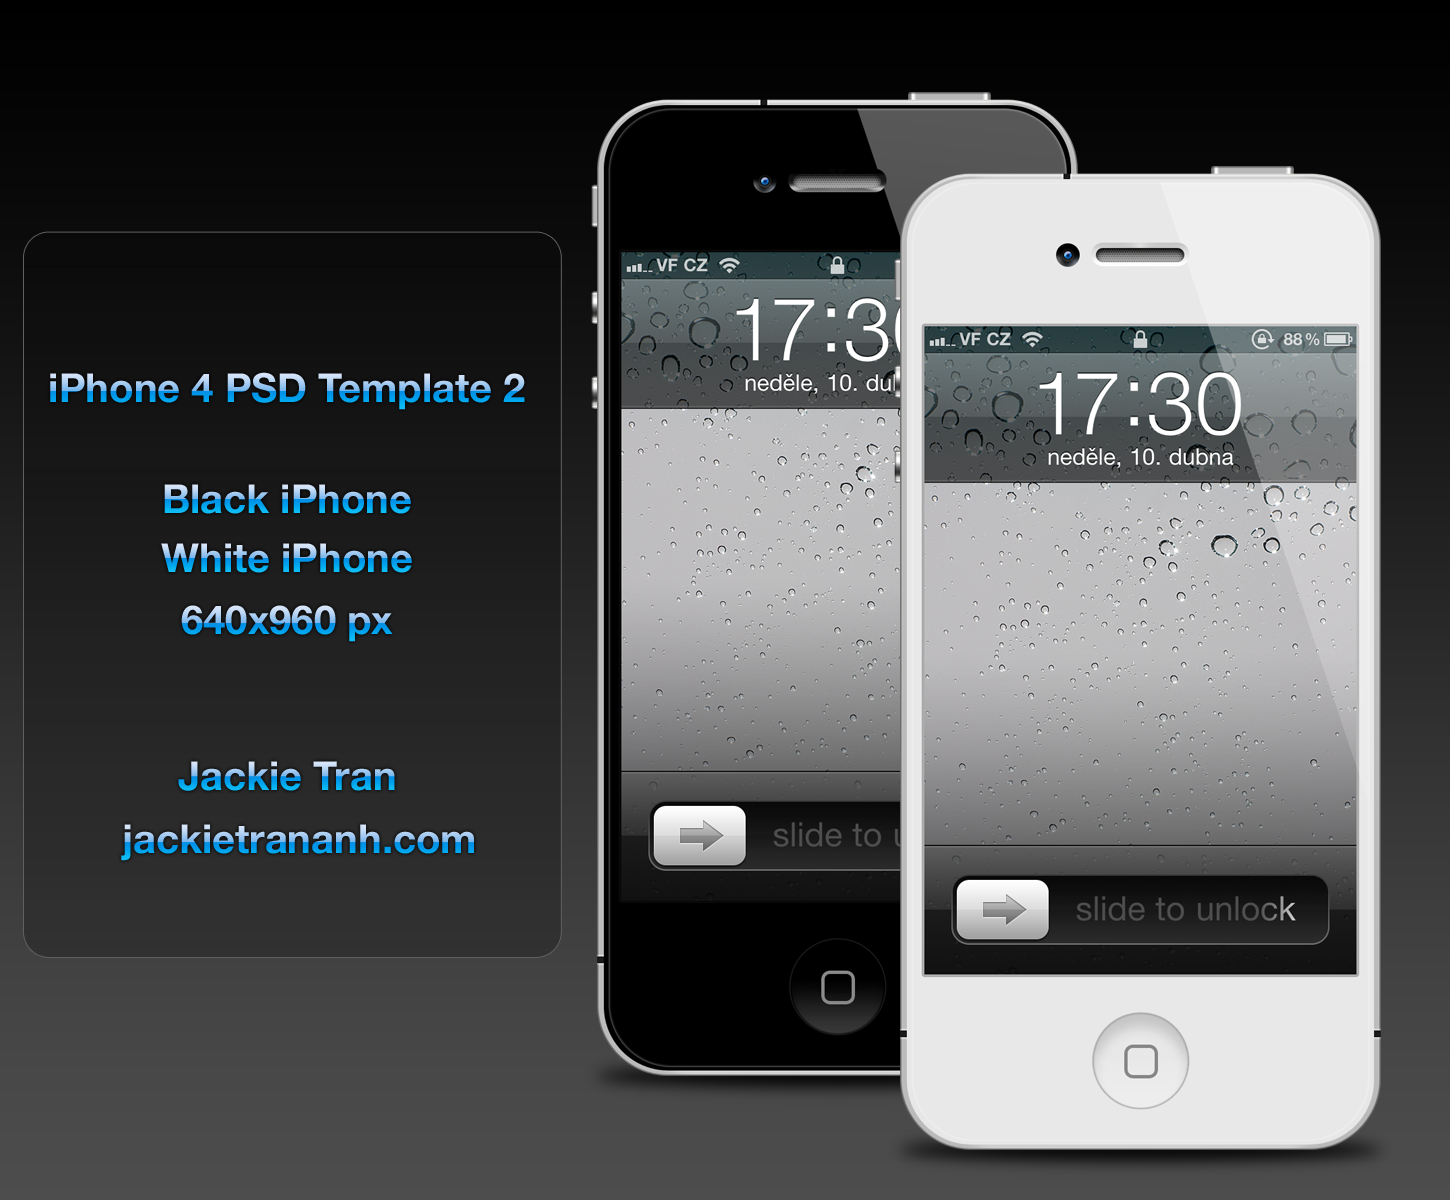 iPhone 4 Template v.2 by JackieTran on DeviantArtIphone 4 Template